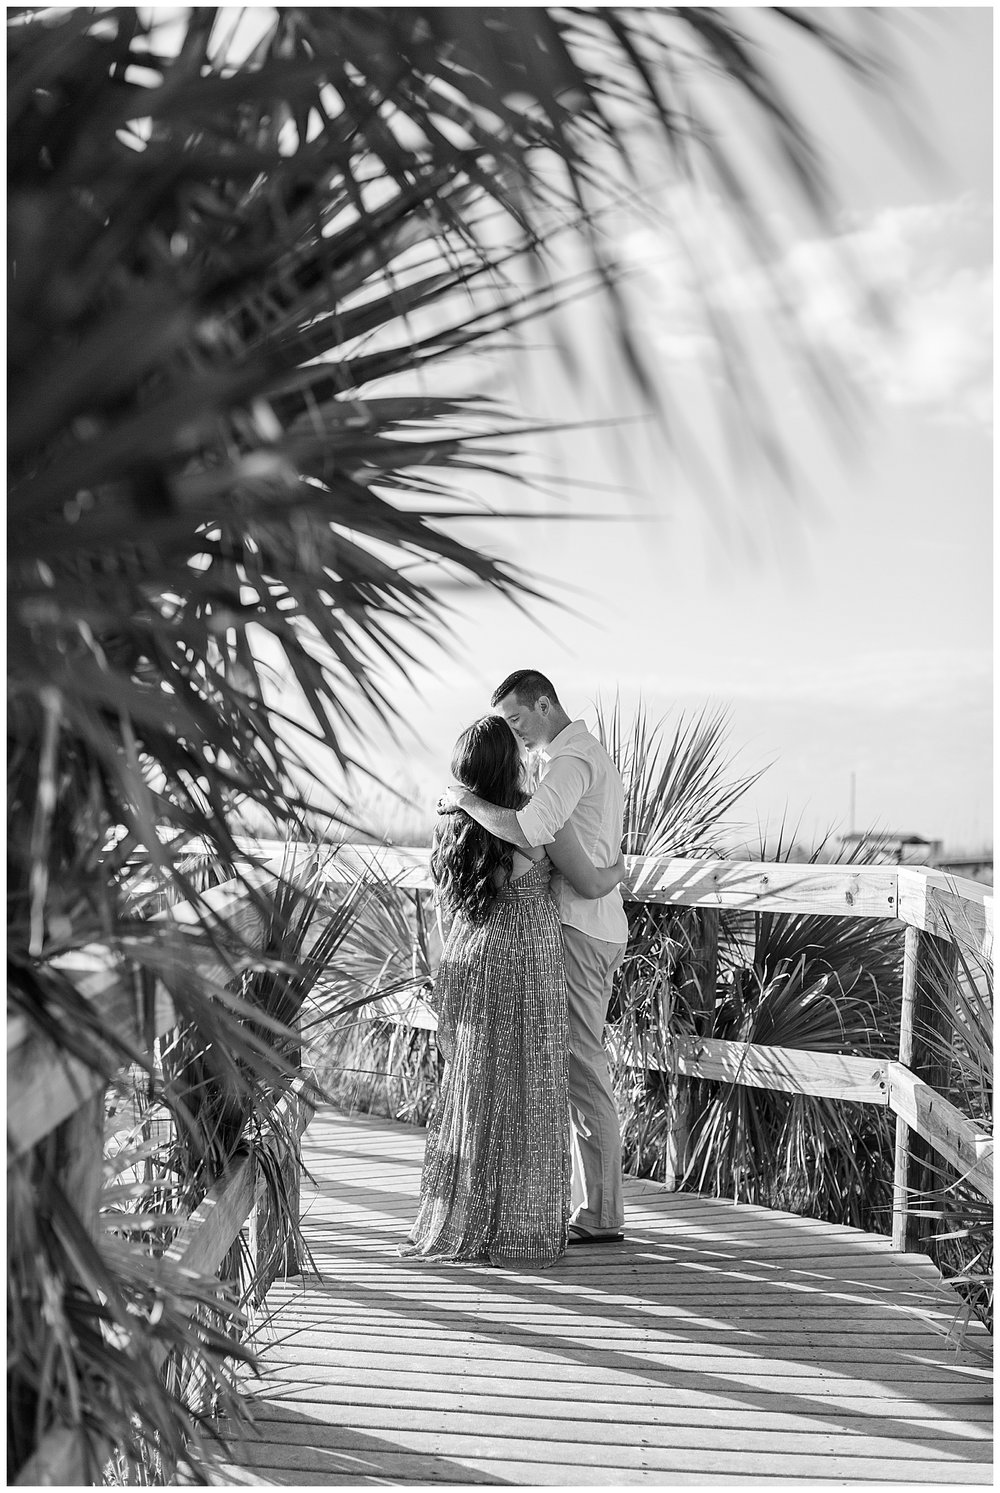 emily-belson-photography-florida-engagement-07.jpg